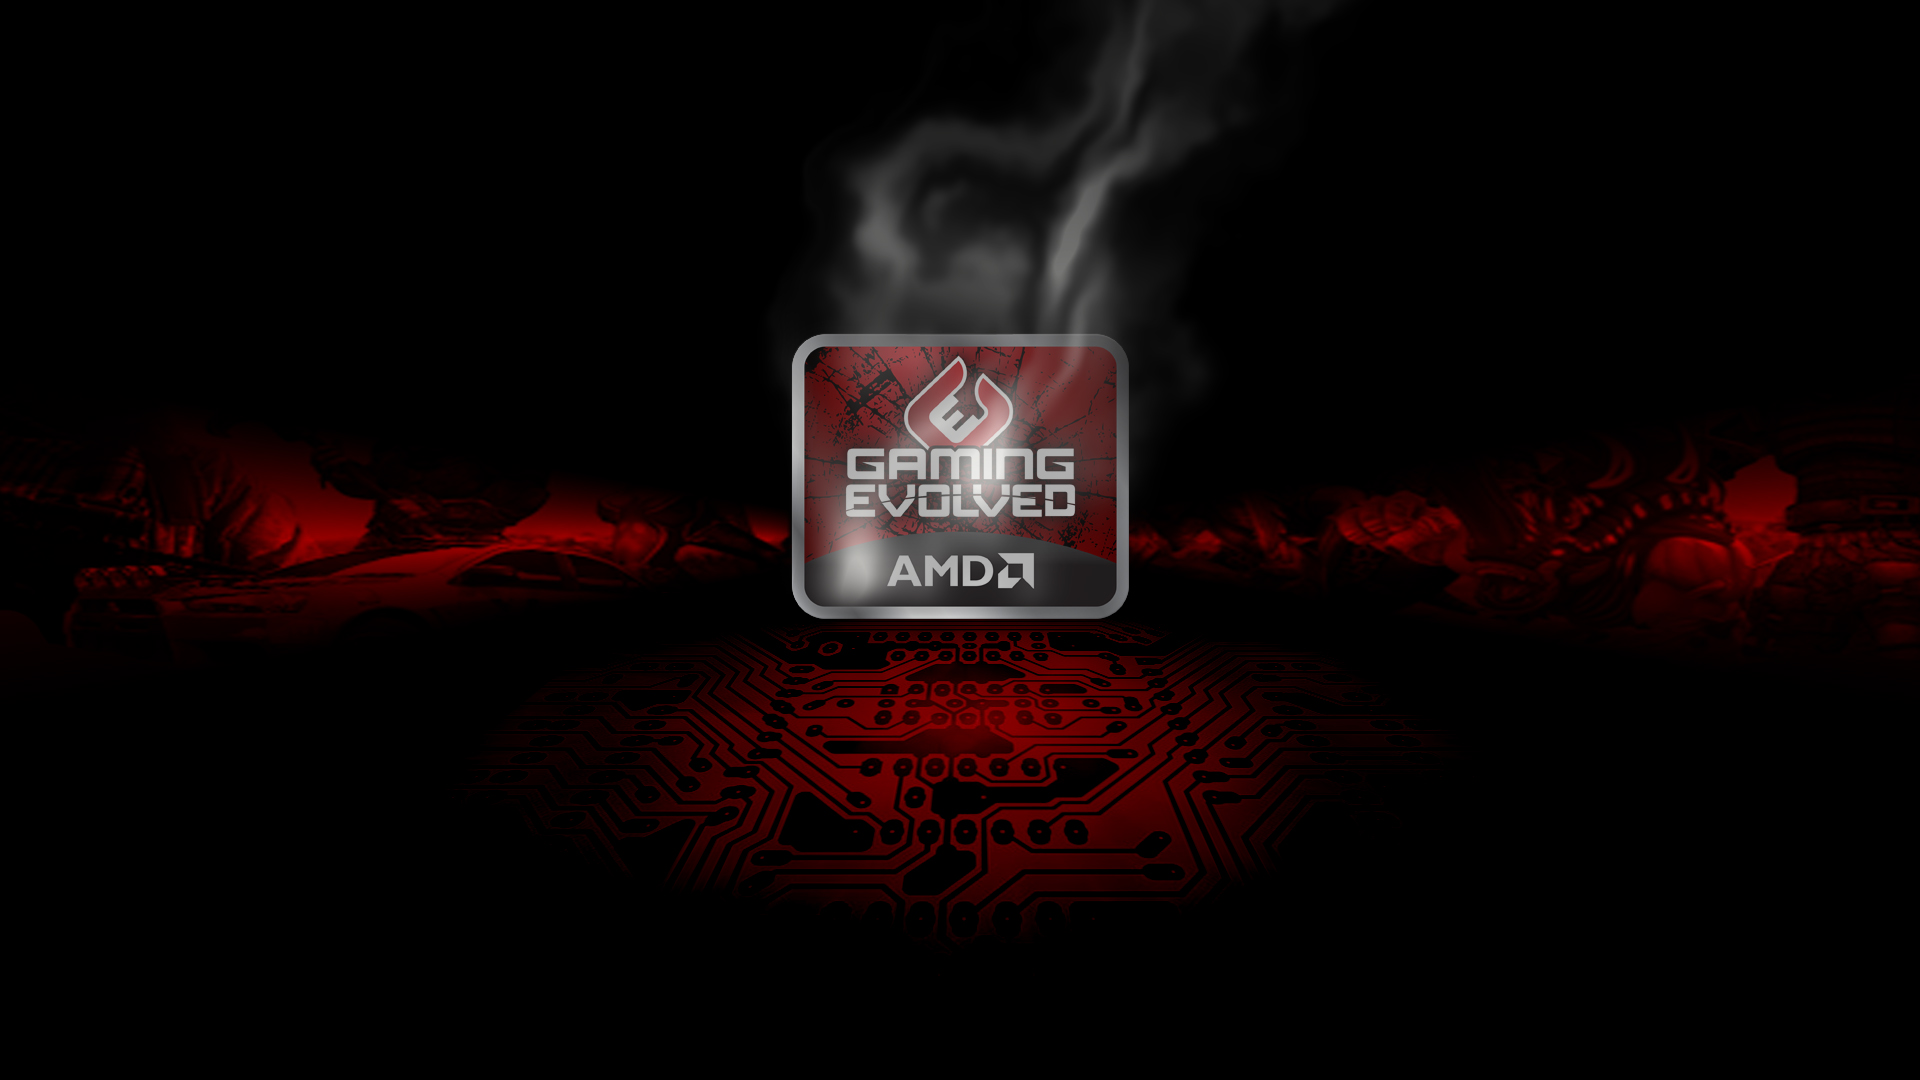 amd wallpapers teamstealth - photo #4